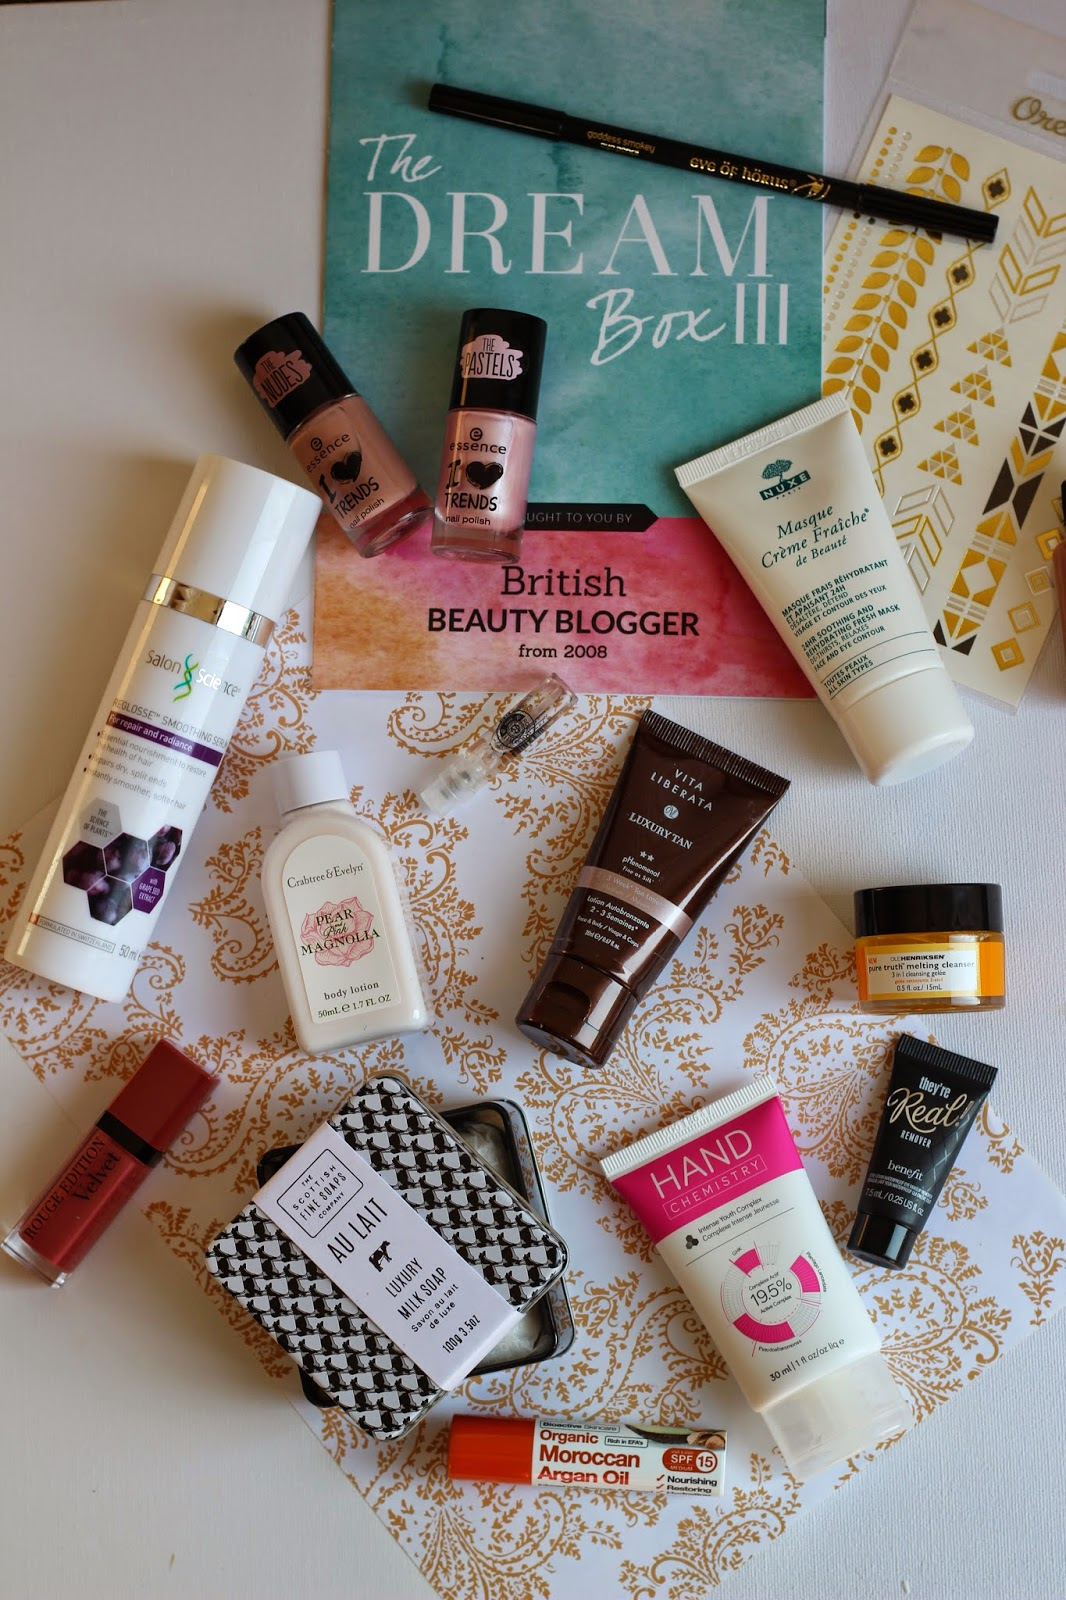 British Beauty Blogger: Dream Box III